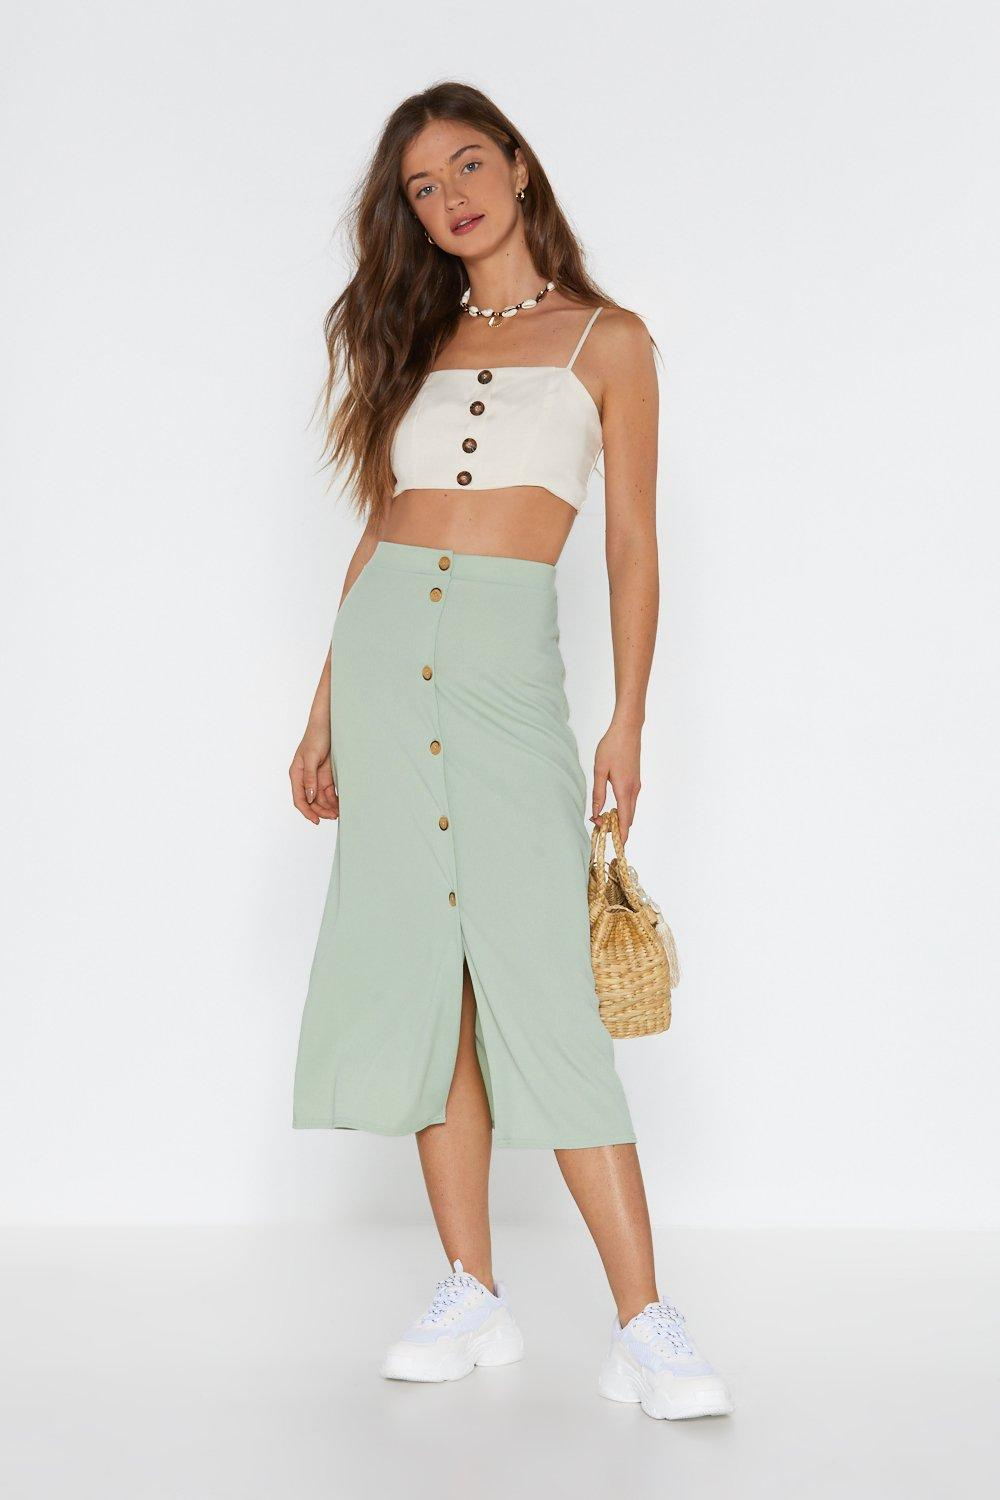 outlet online latest top-rated official Button Your Marks Midi Skirt | Shop Clothes at Nasty Gal!